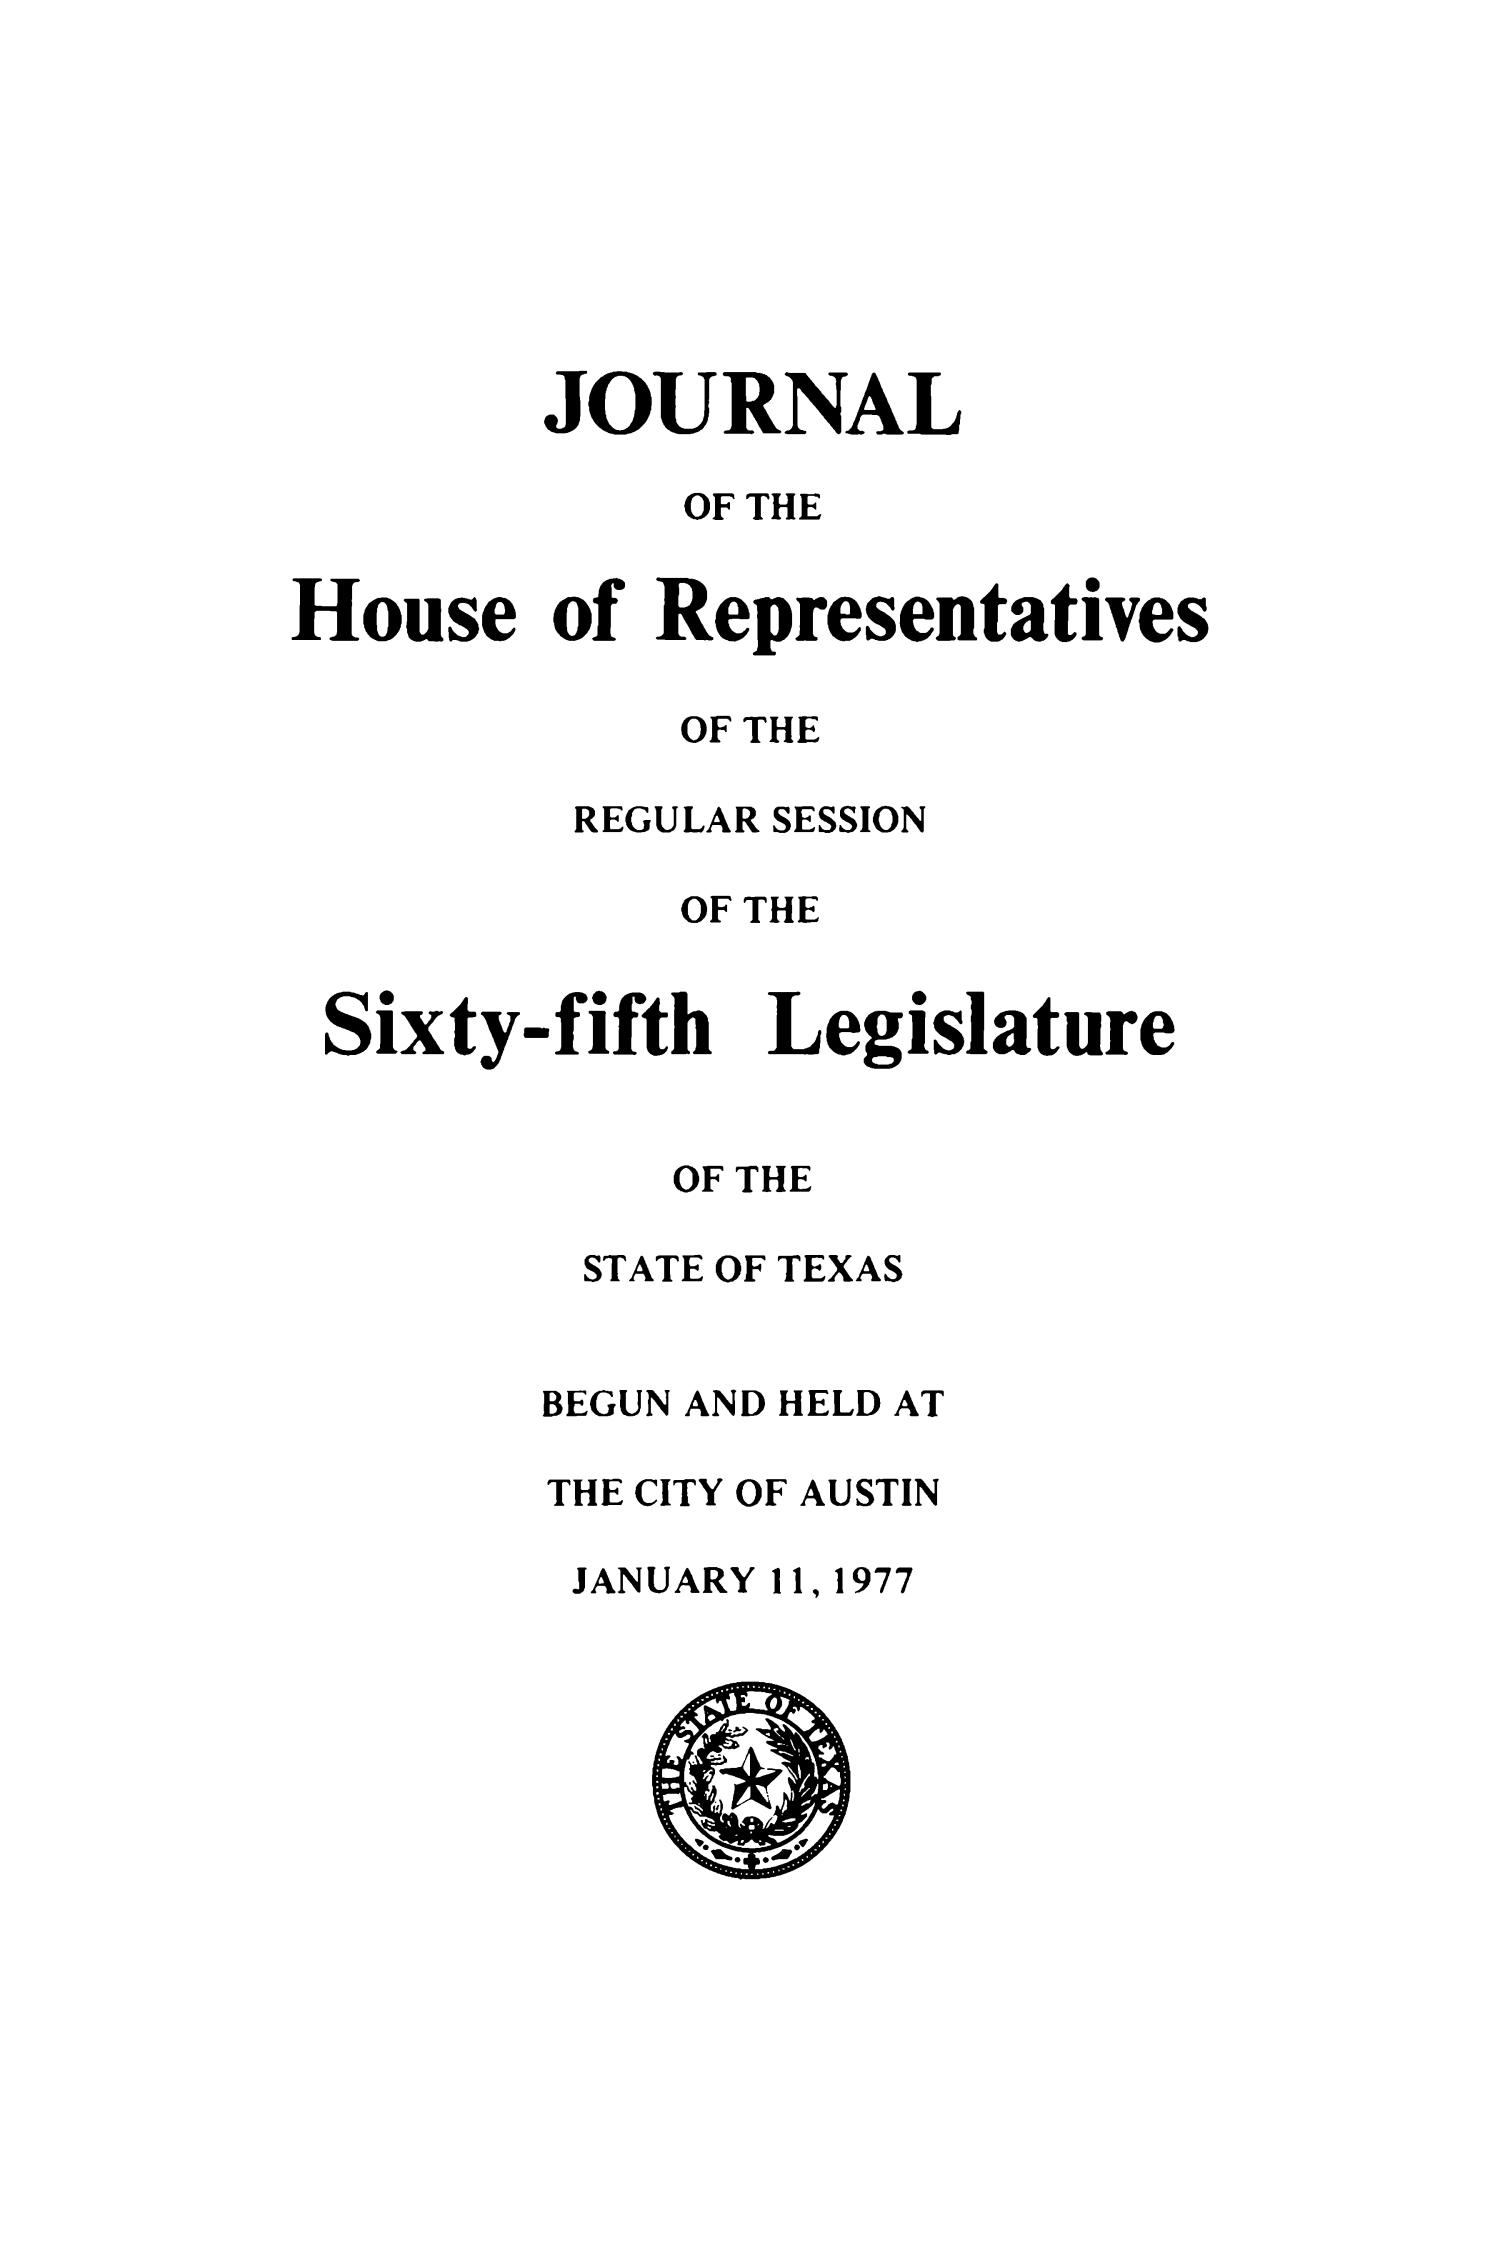 Journal of the House of Representatives of the Regular Session of the Sixty-Fifth Legislature of the State of Texas, Volume 1                                                                                                      Title Page